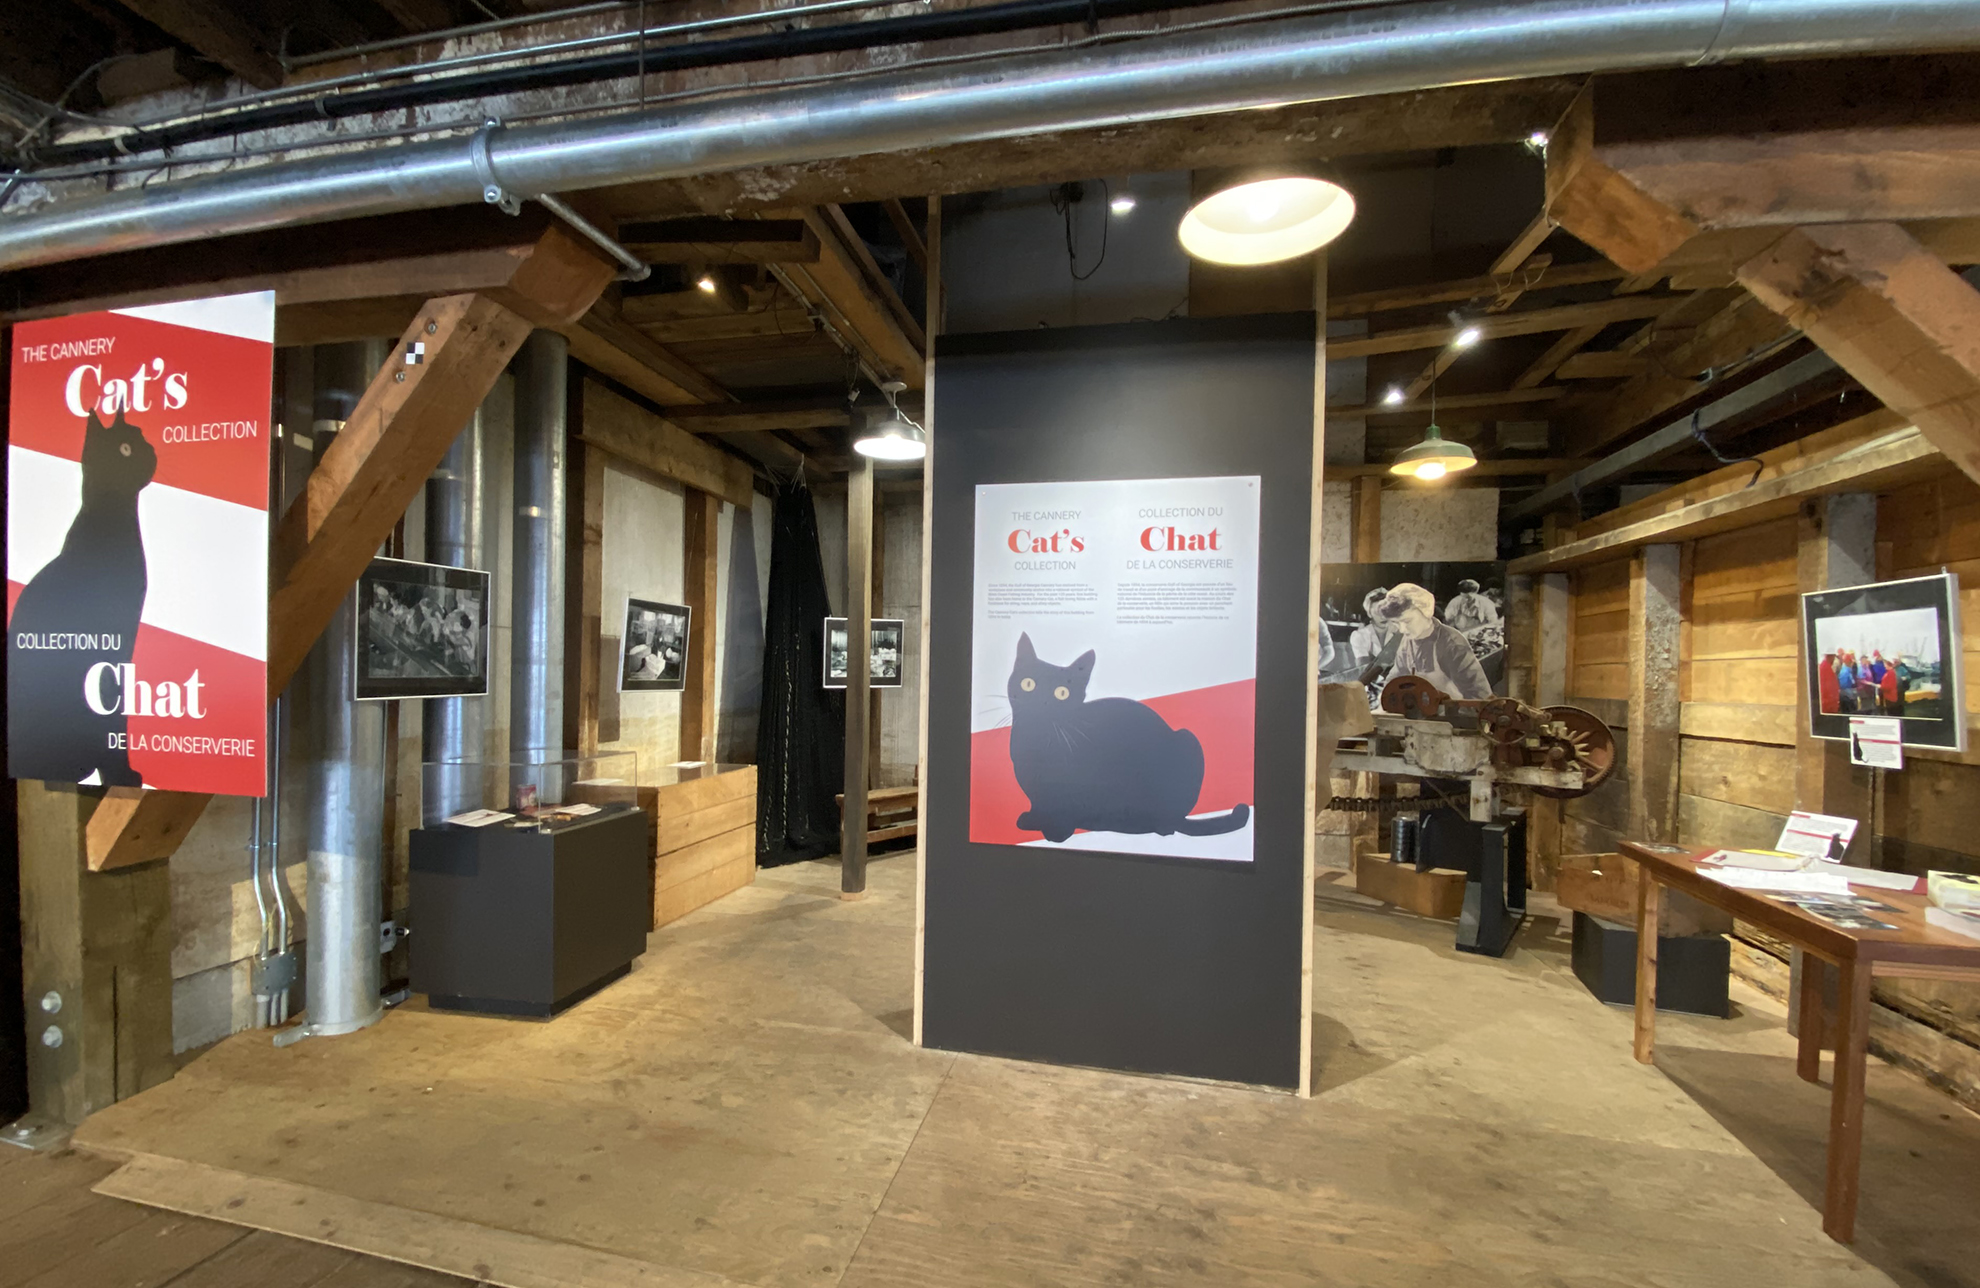 Cannery Cat exhibition display